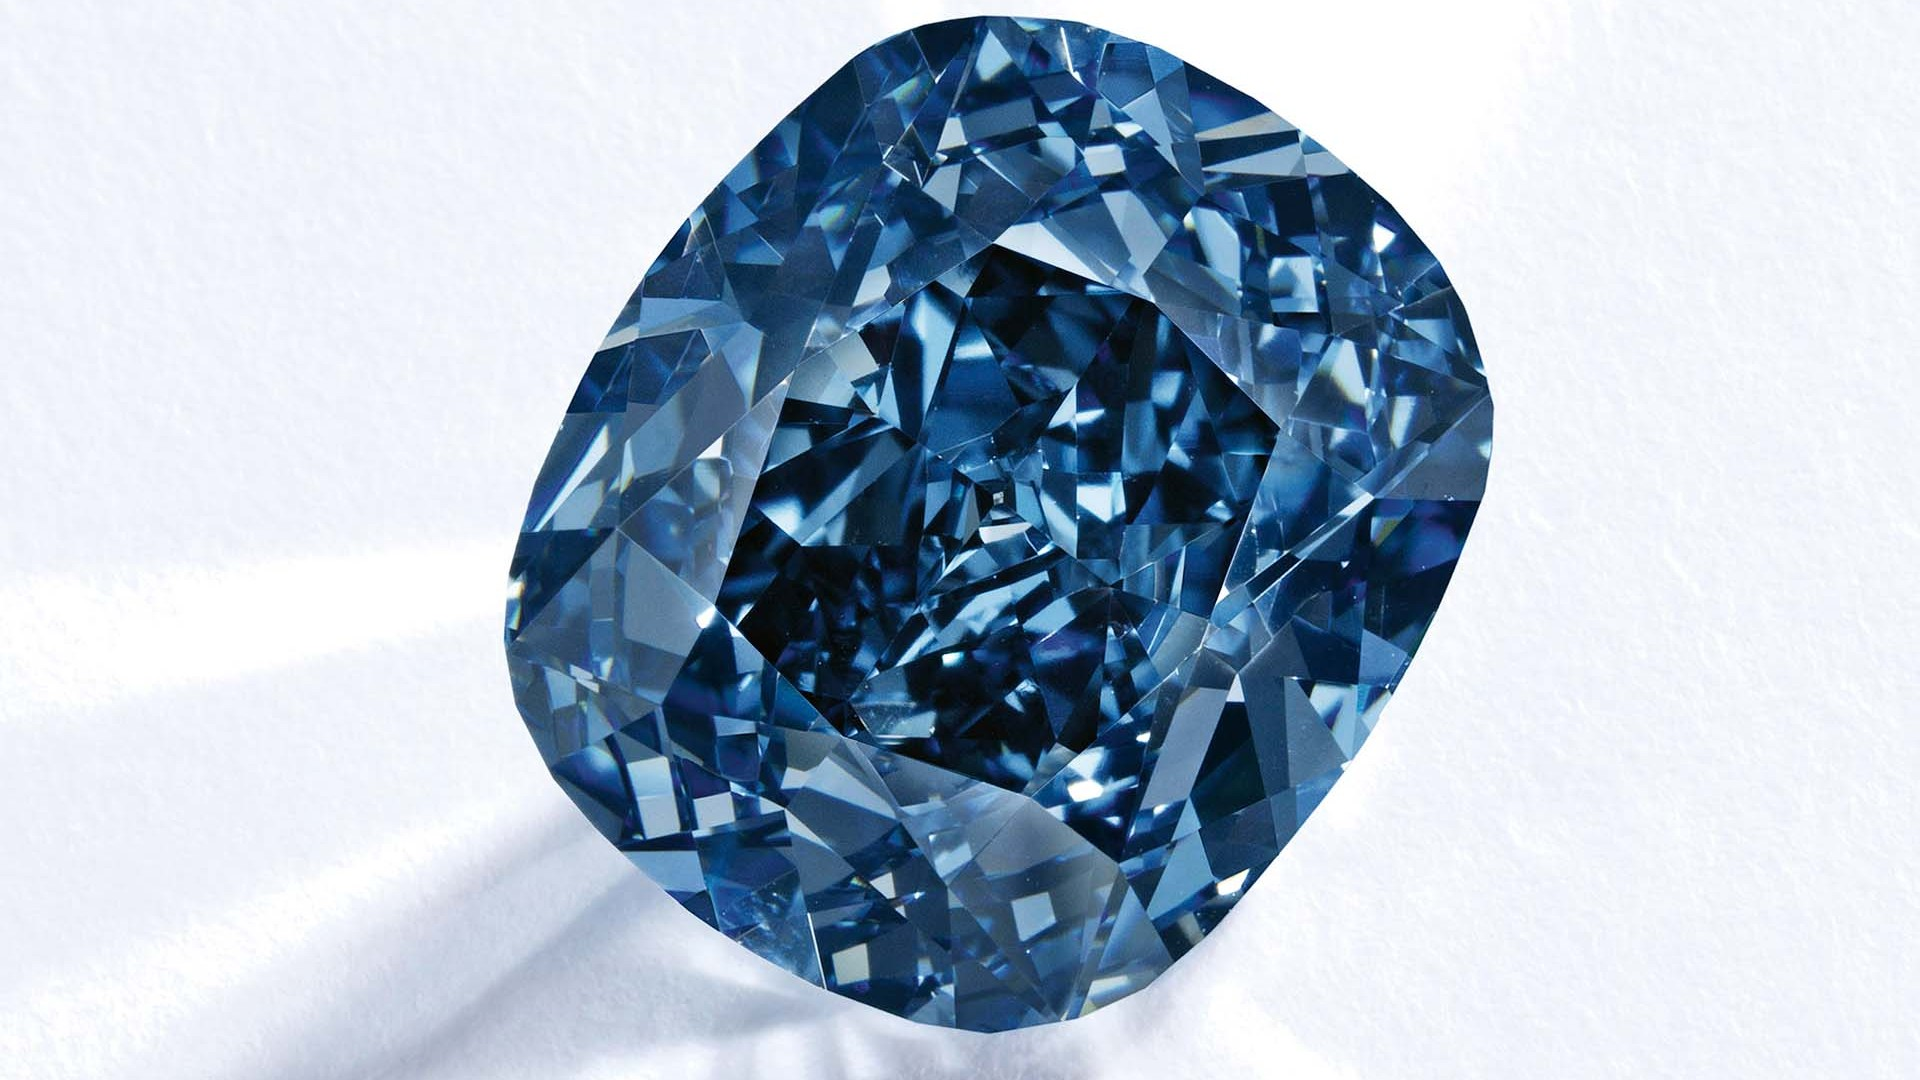 Diamonds - Get Schooled! Diamond Education For The Rest Of Us